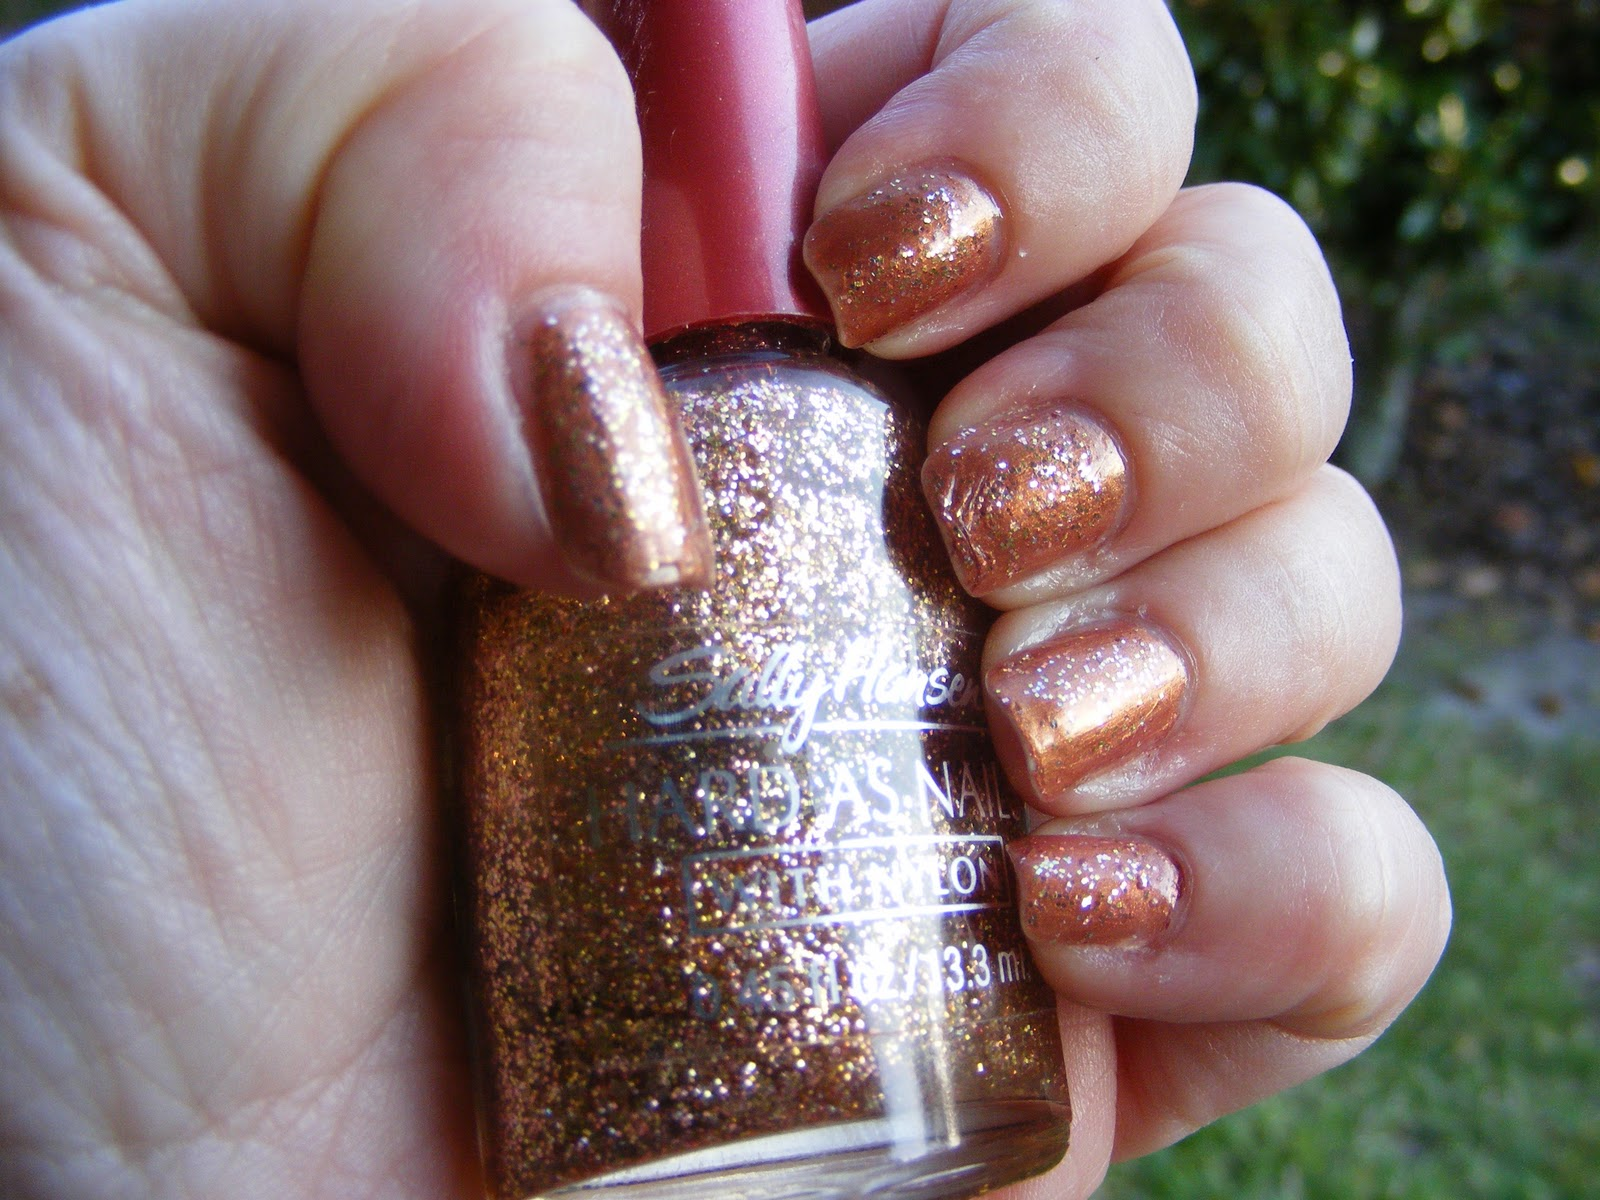 That S Some Sassy Bronze Glitter After Just Two Coats It Made A Beautiful Combo